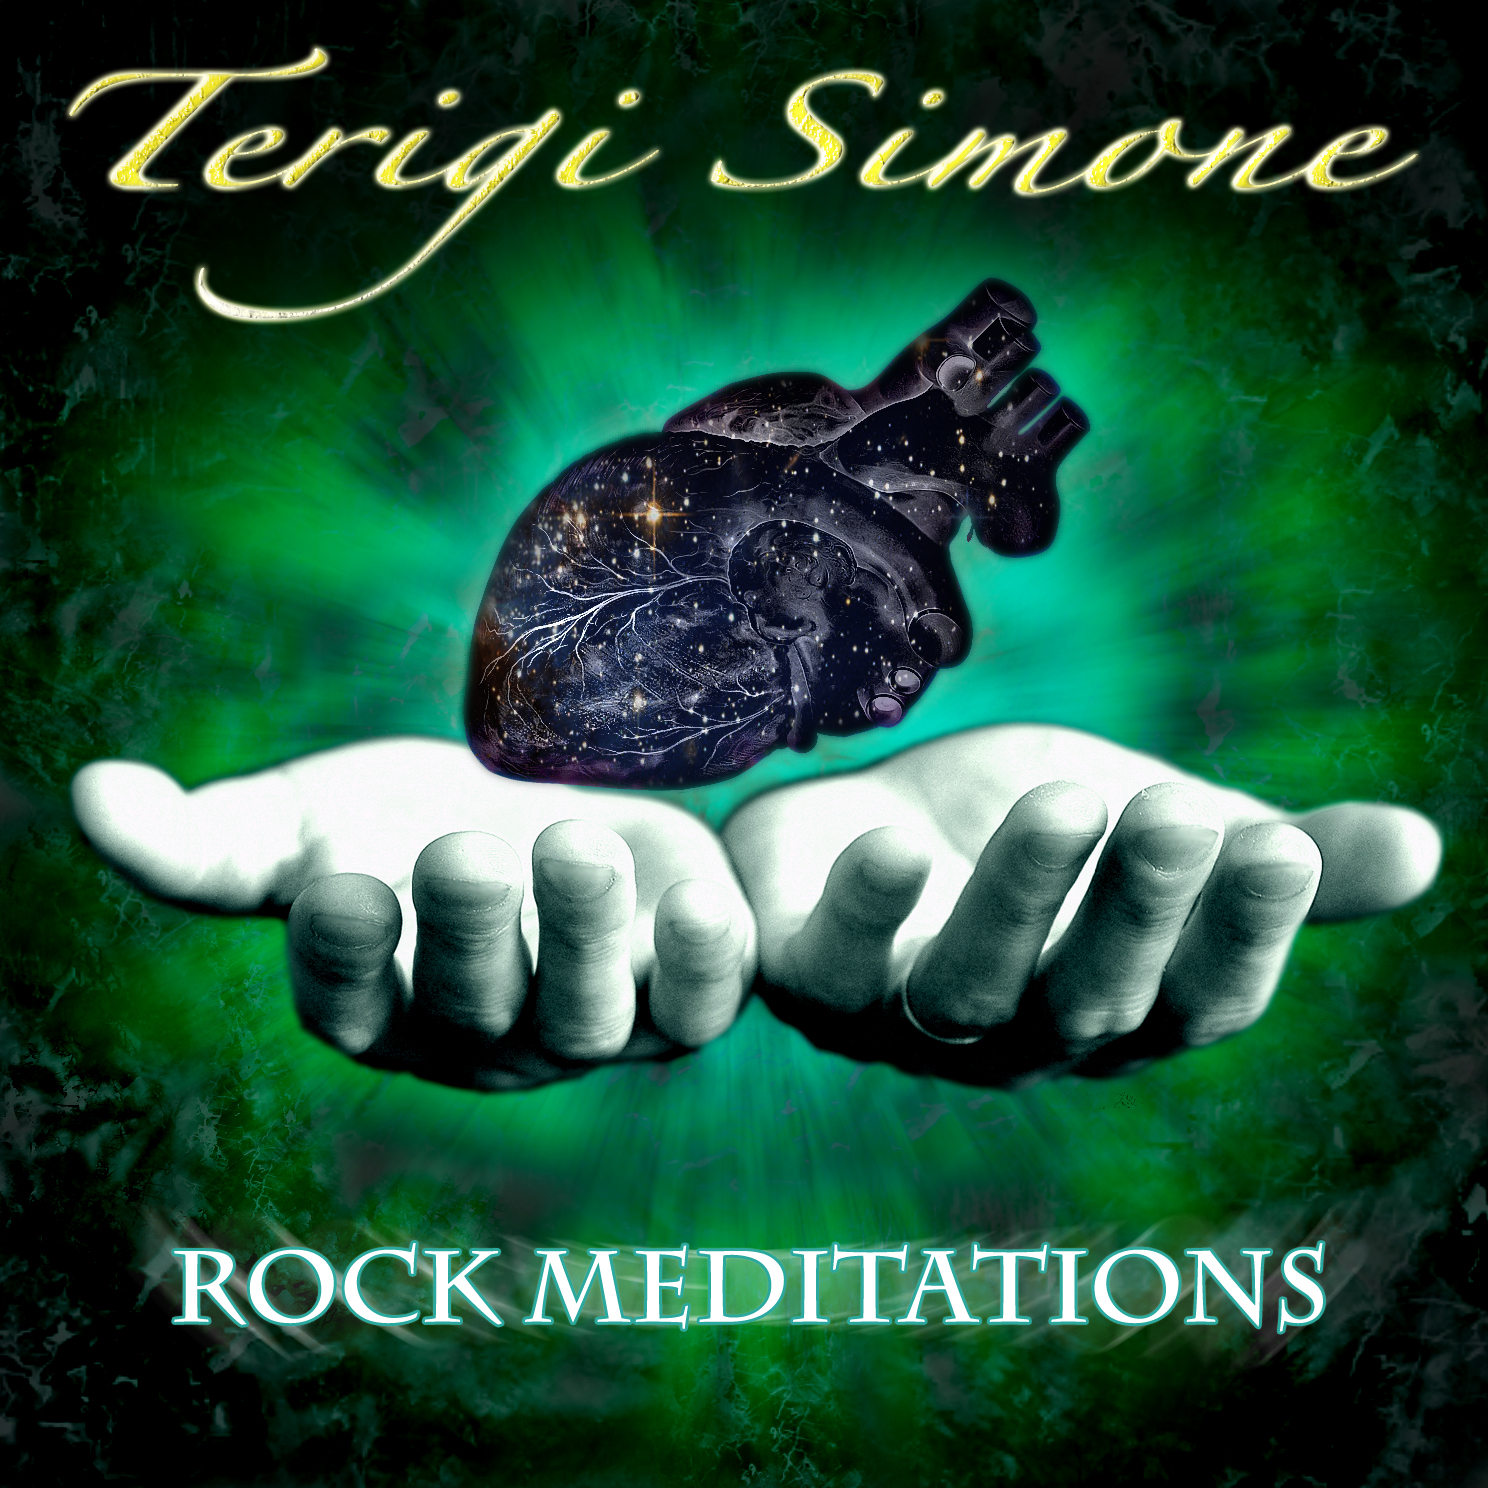 simone terigi rock meditations